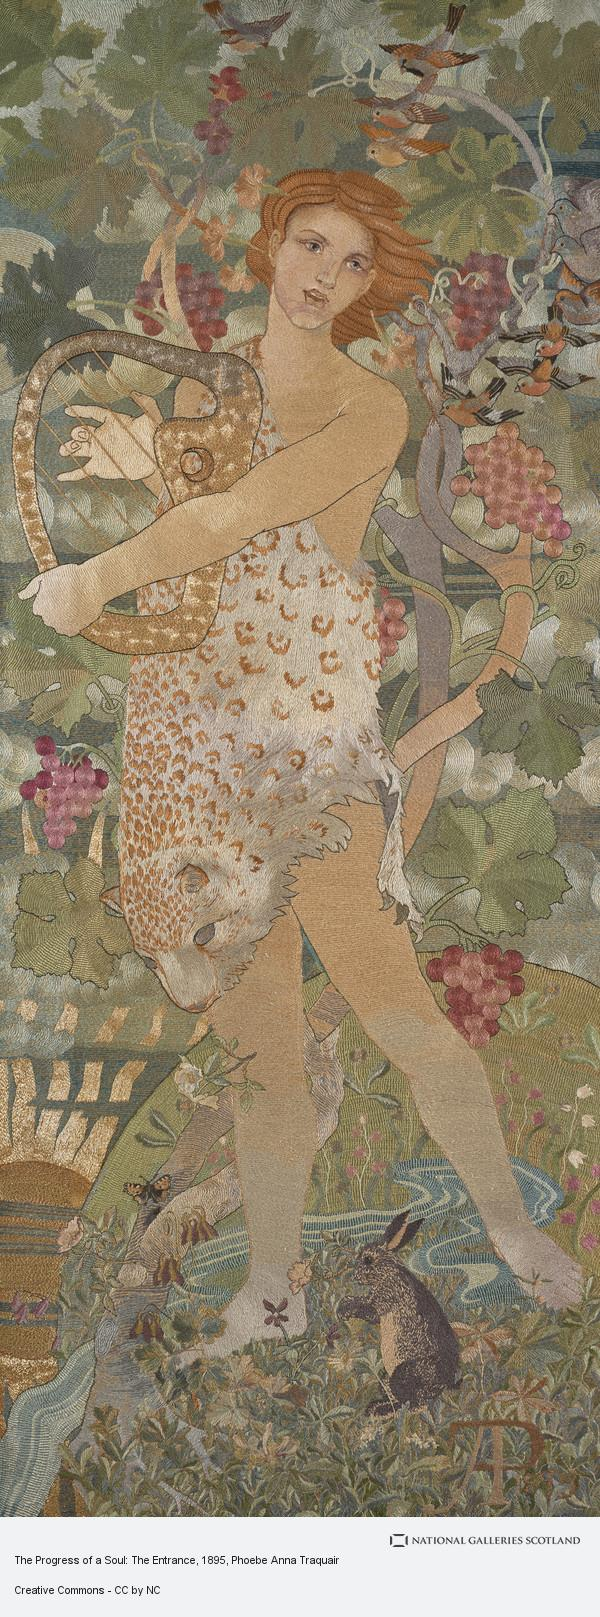 Phoebe Anna Traquair, The Progress of a Soul: The Entrance